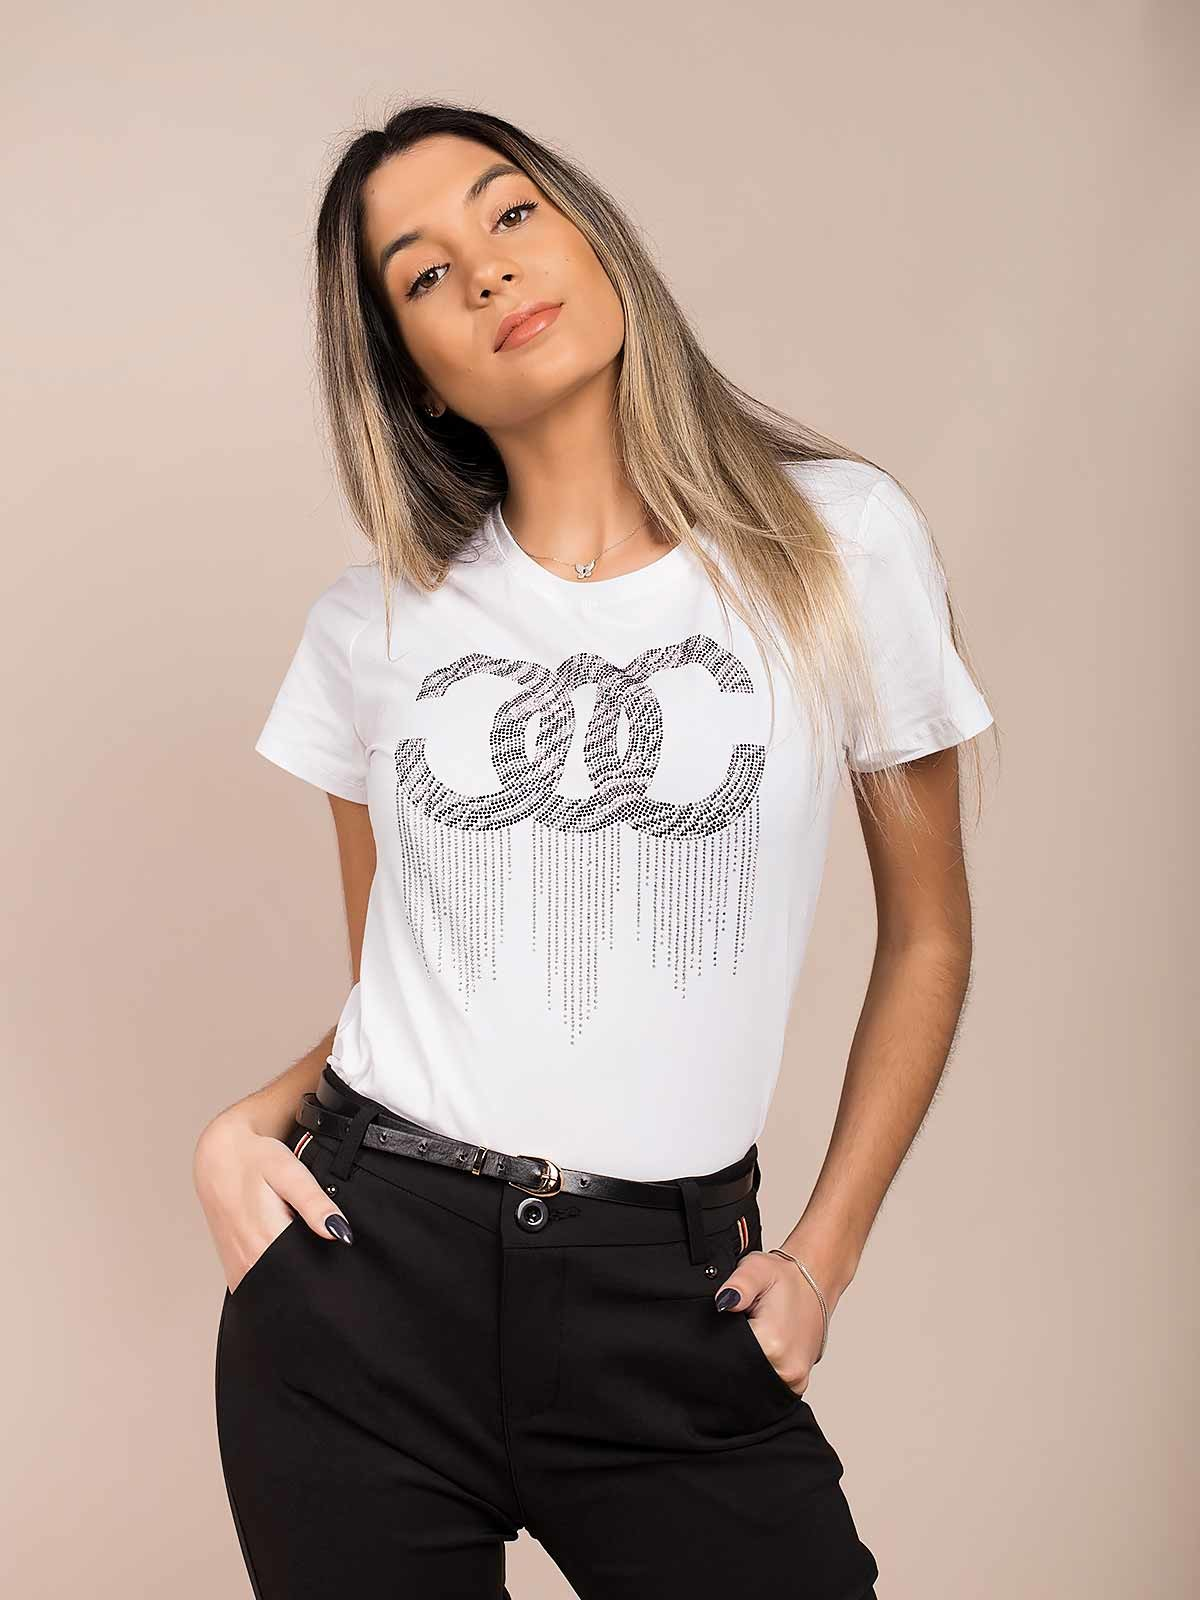 Camiseta con diamantes